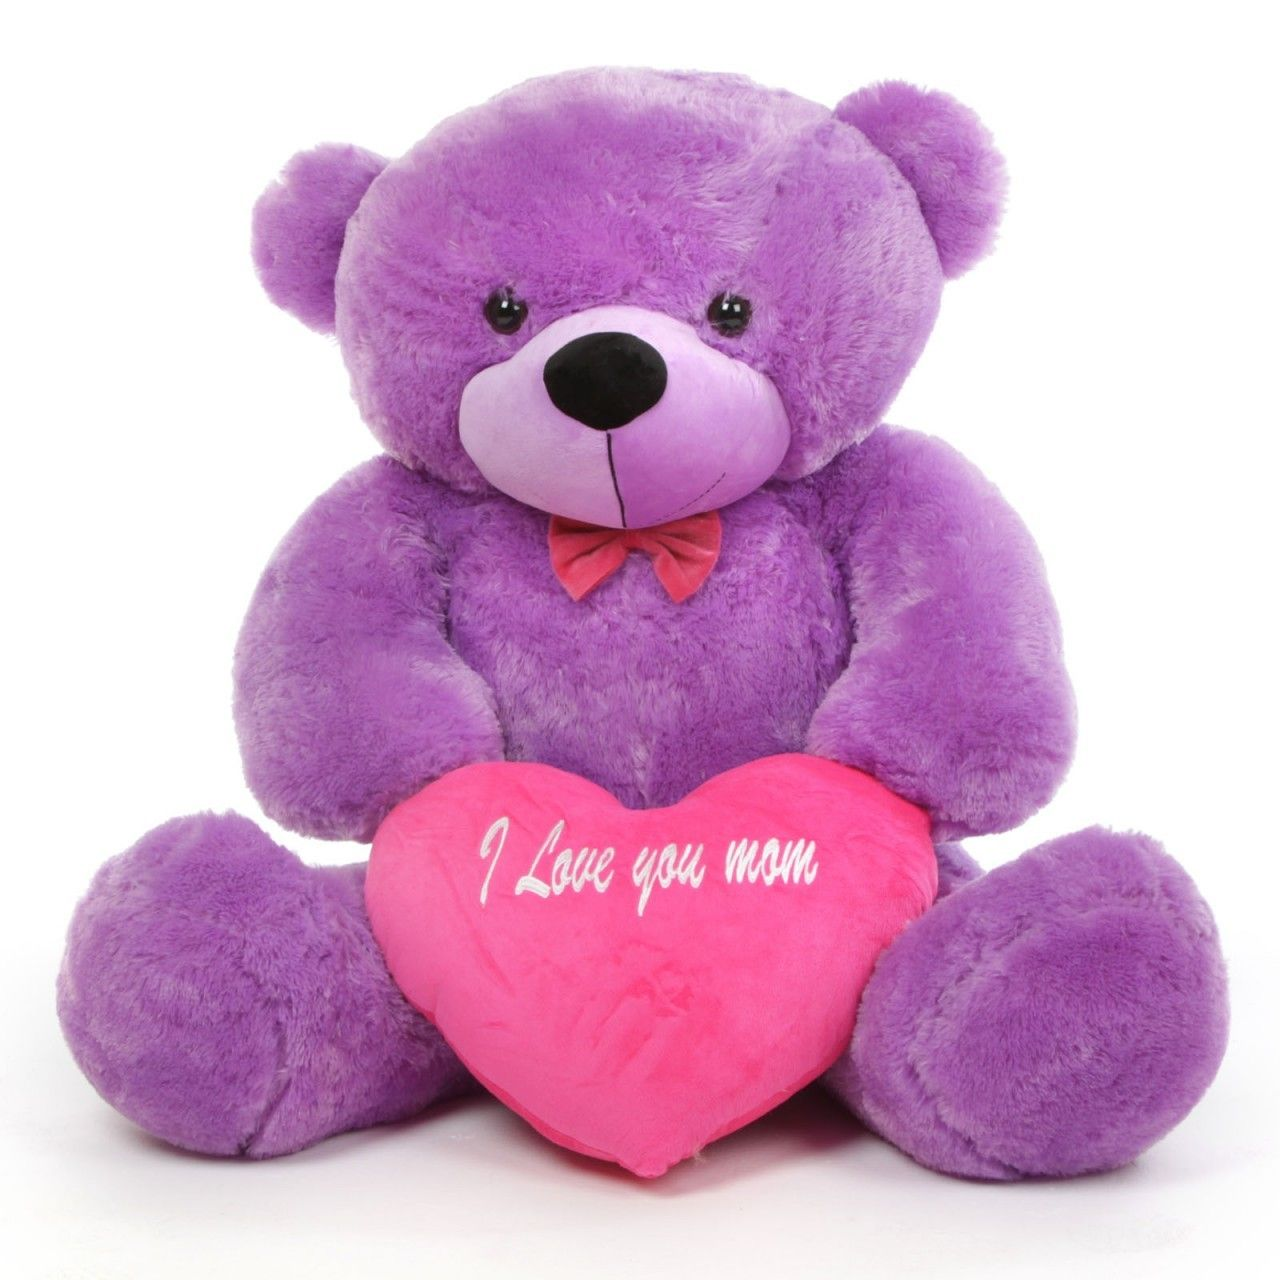 Deedee m cuddles purple teddy bear with i love you mom heart 48in pink and purple pictures deedee m cuddles purple teddy bear with i love you mom heart 48in altavistaventures Images